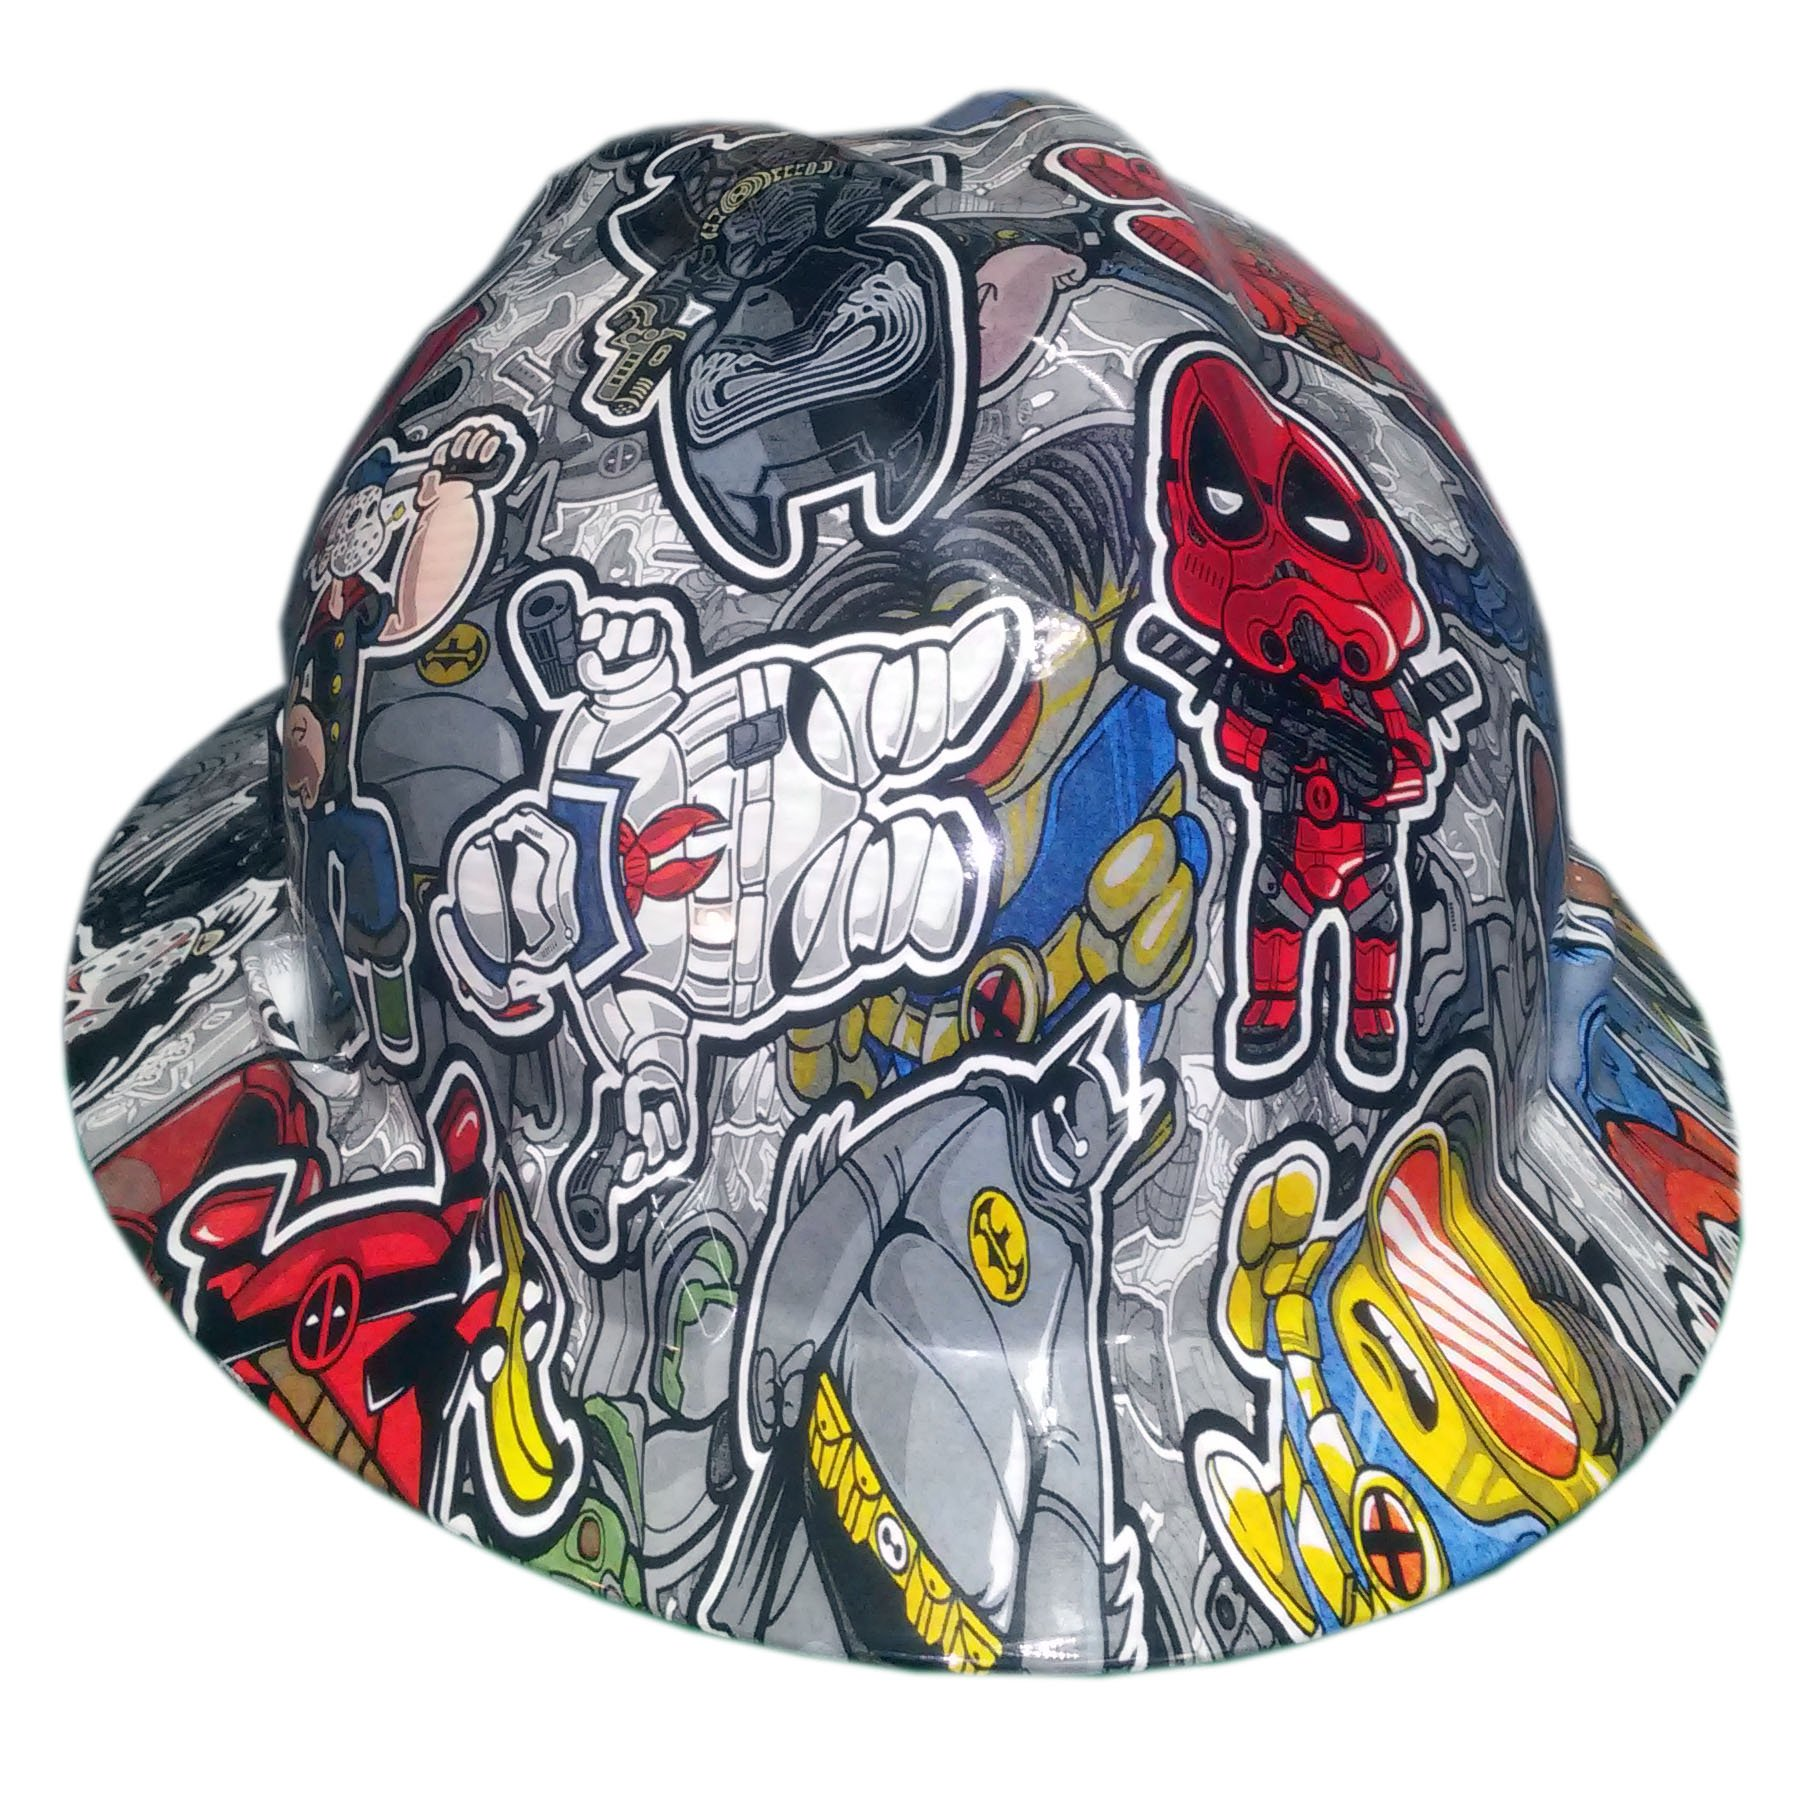 Izzo Graphics Twisted Toons MSA V-Guard Full Brim Hard Hat by MSA